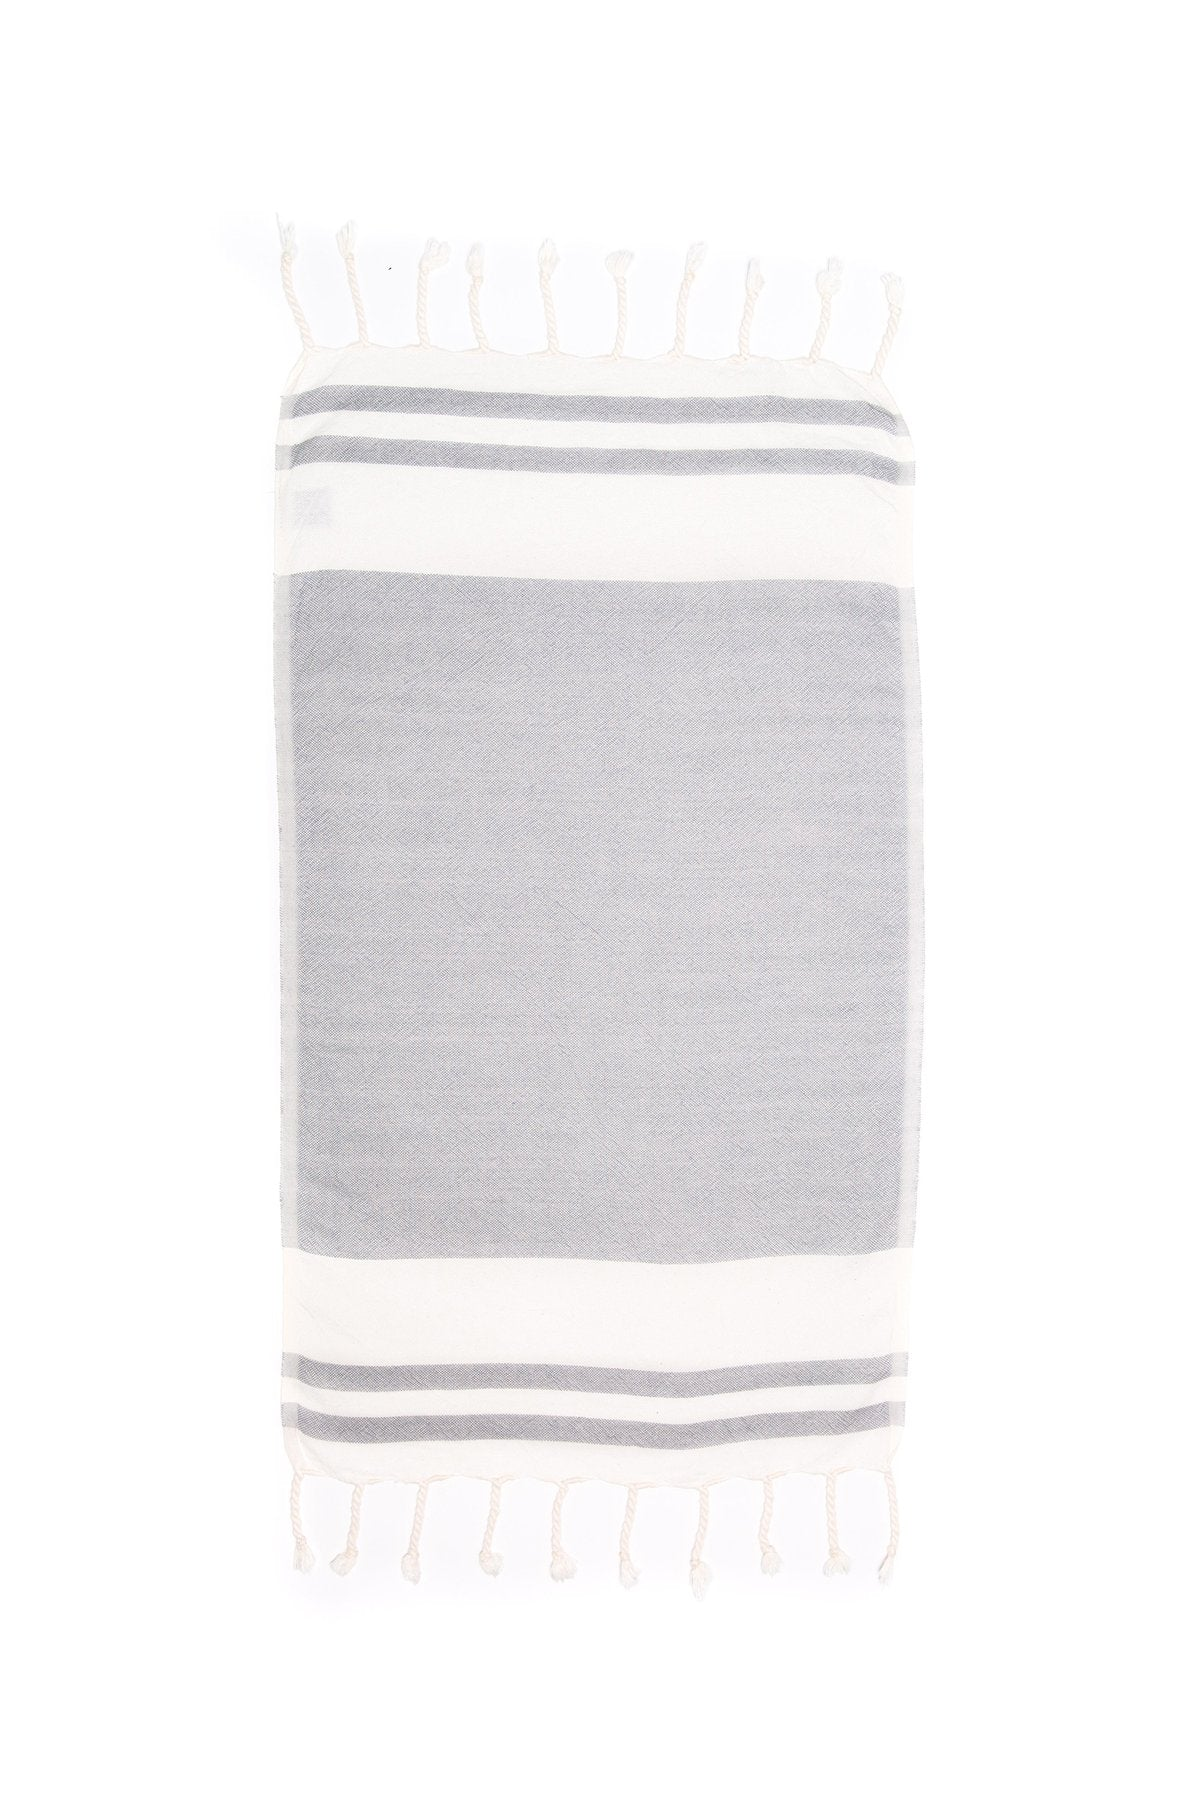 Tofino Towel - Hatch Kitchen Towel Set